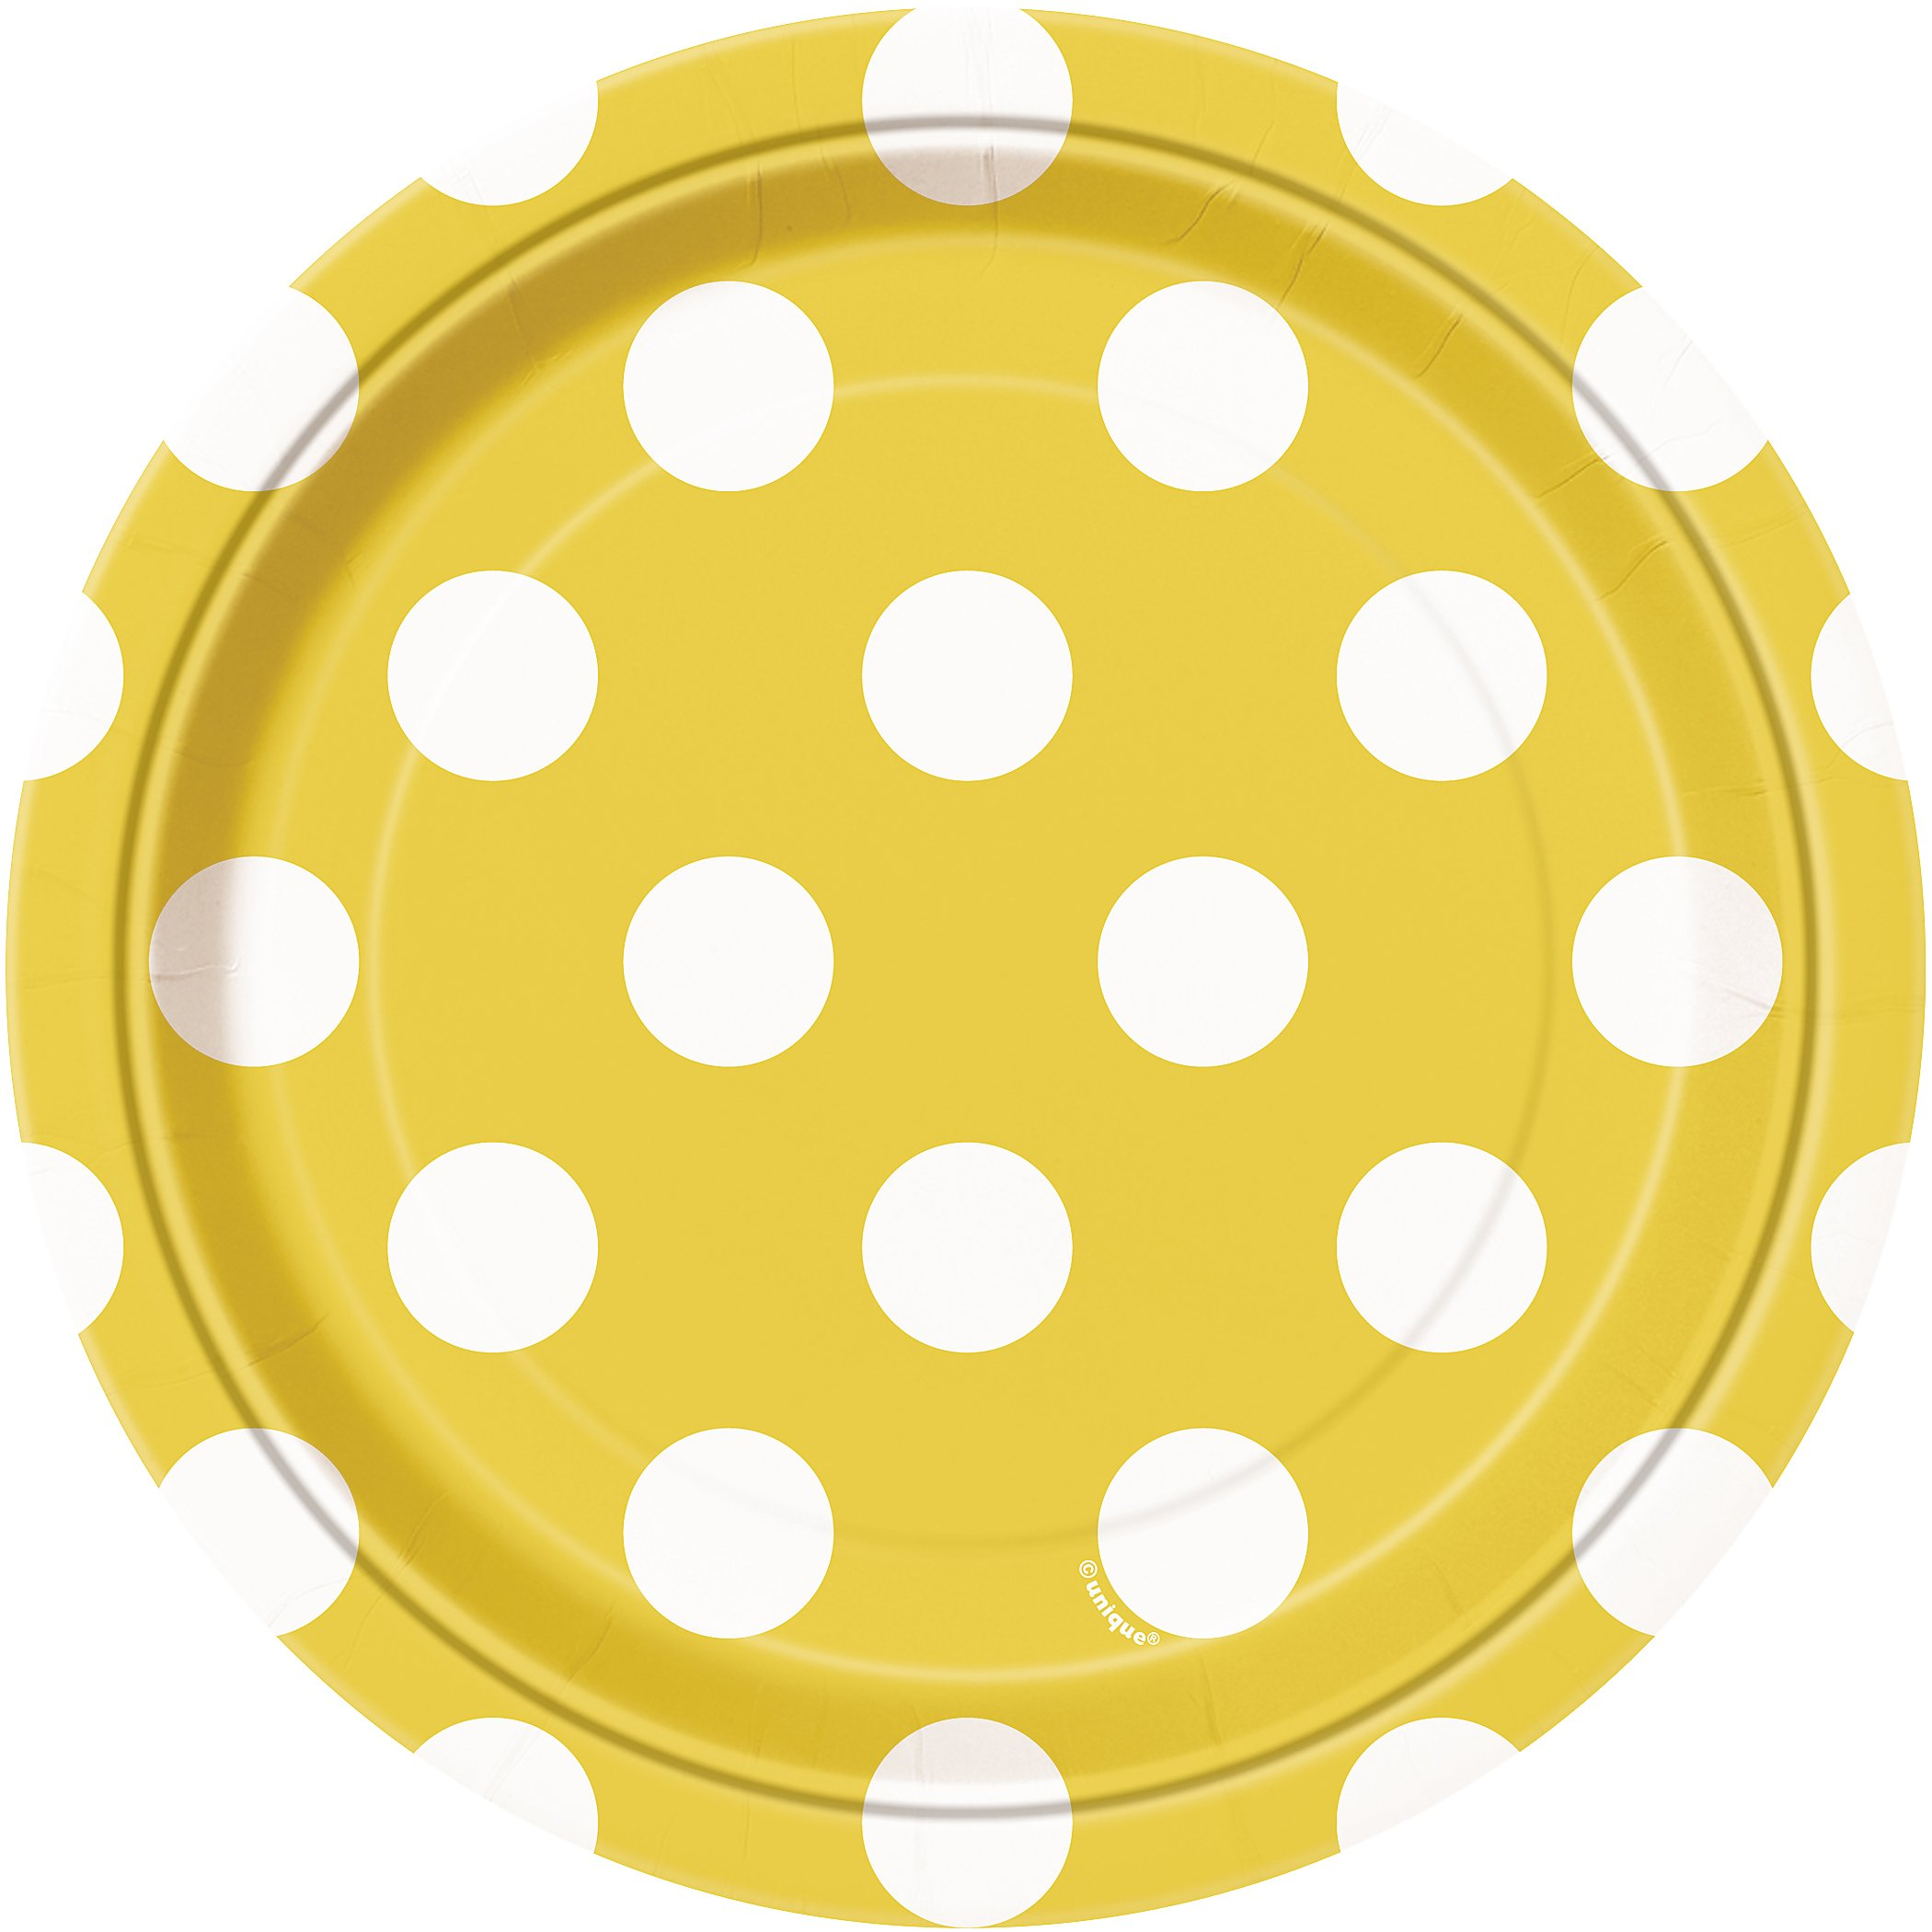 Yellow Polka Dot Paper Cake Plates, 8ct by Unique (Image #1)